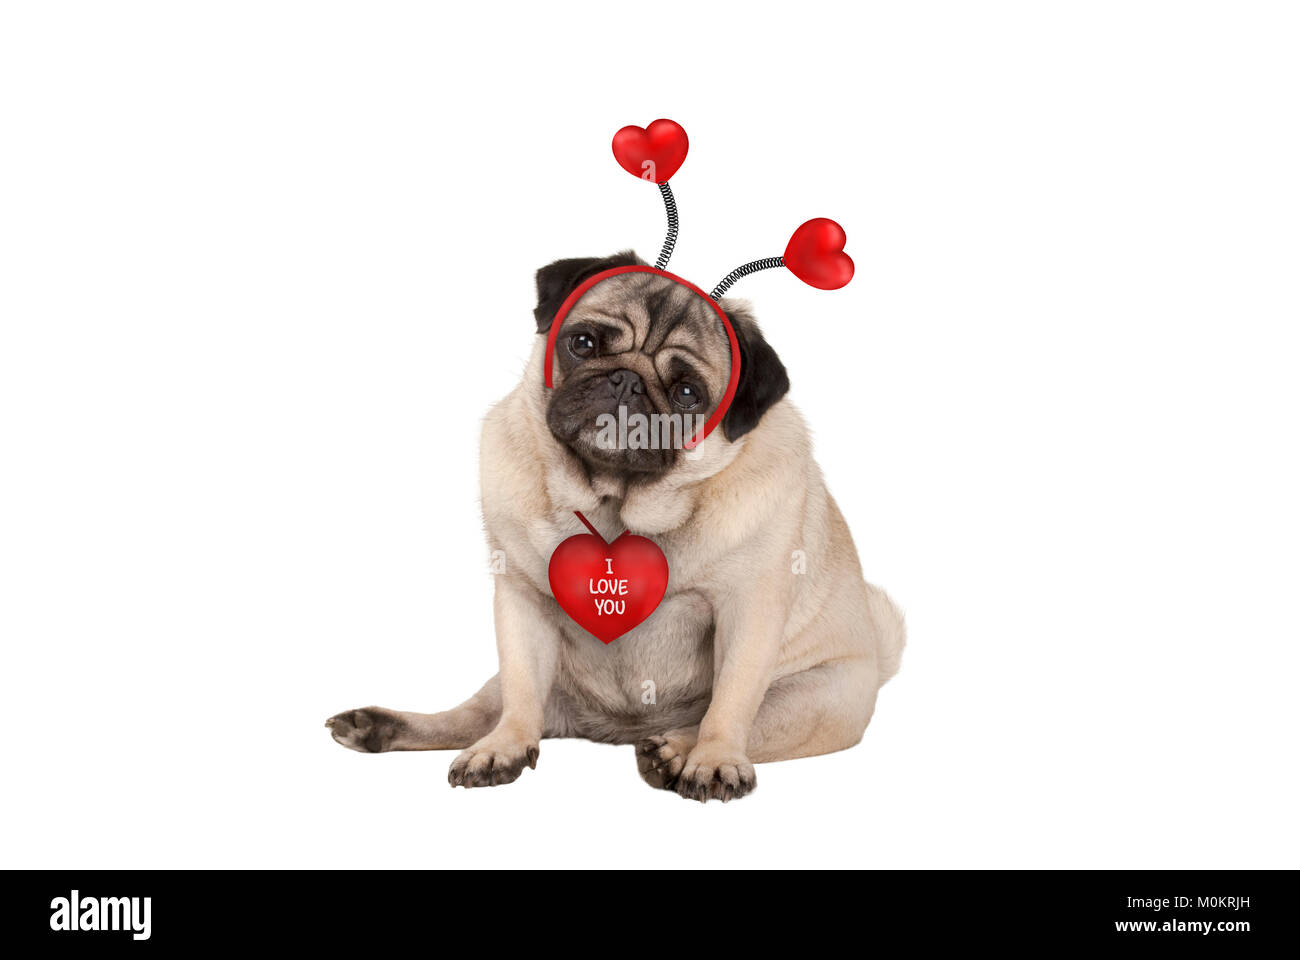 cute Valentine's day pug puppy dog, sitting down, wearing hearts diadem, isolated on white background - Stock Image